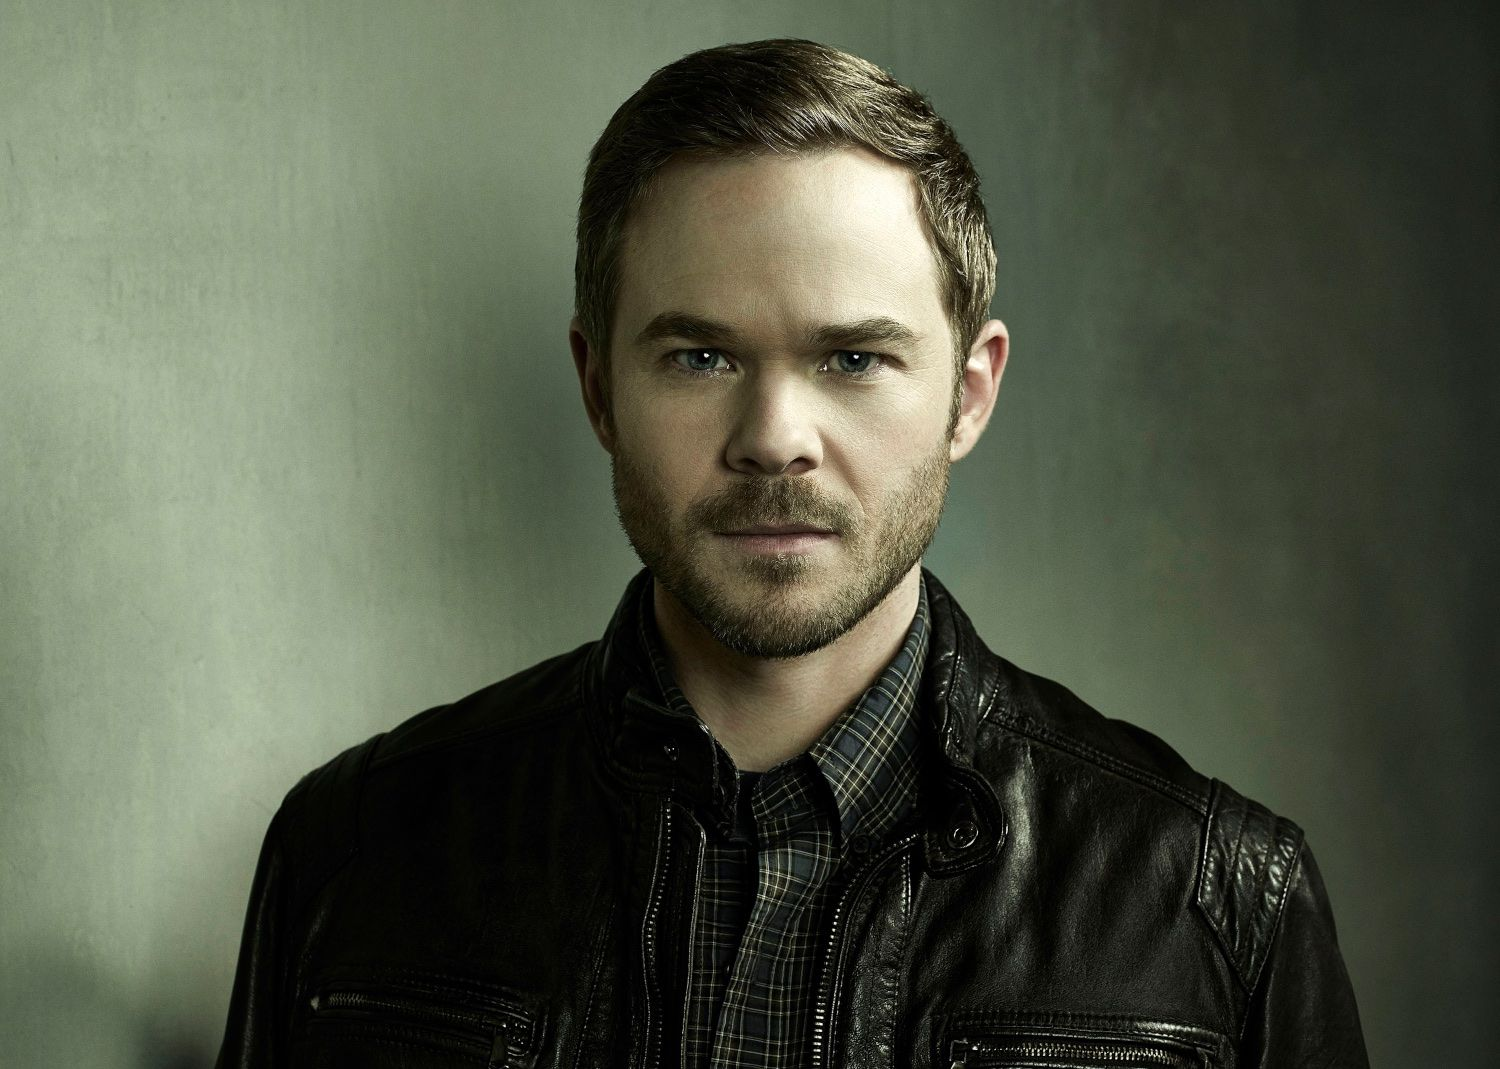 Shawn Ashmore nude (82 images) Sideboobs, Snapchat, butt